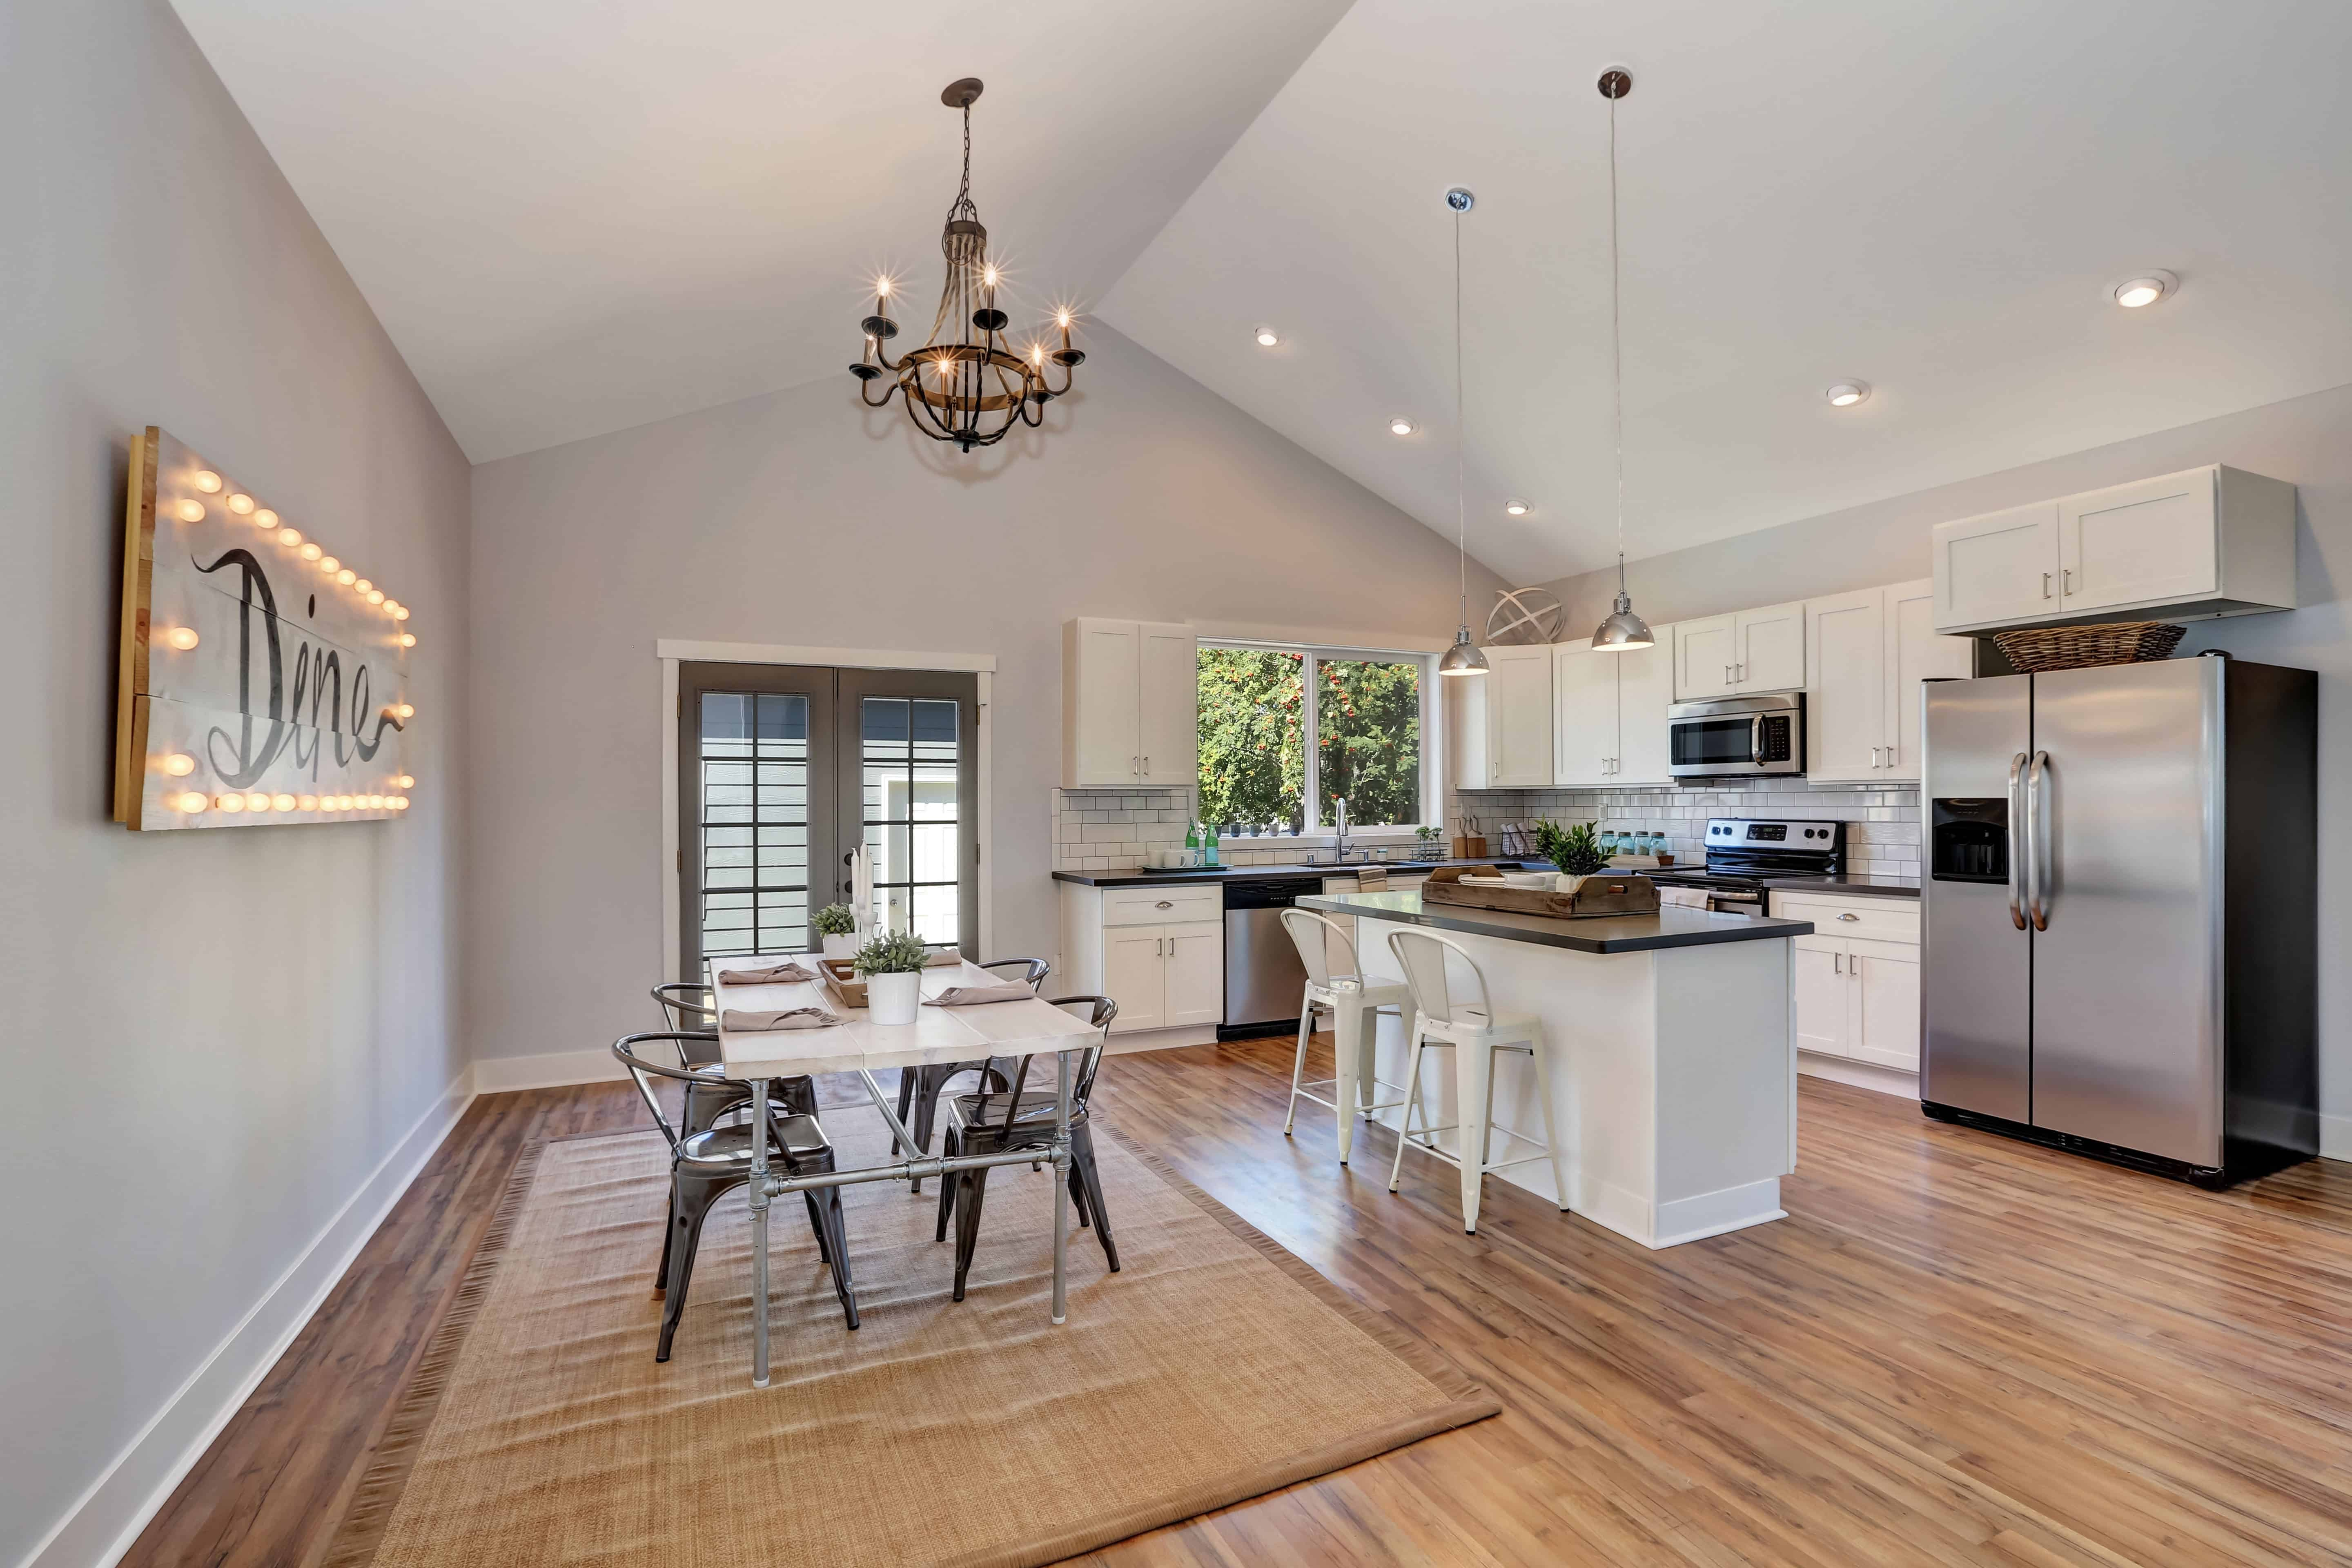 Large dine-in kitchen area featuring gray walls and hardwood flooring. The dining area is lighted by a gorgeous chandelier.